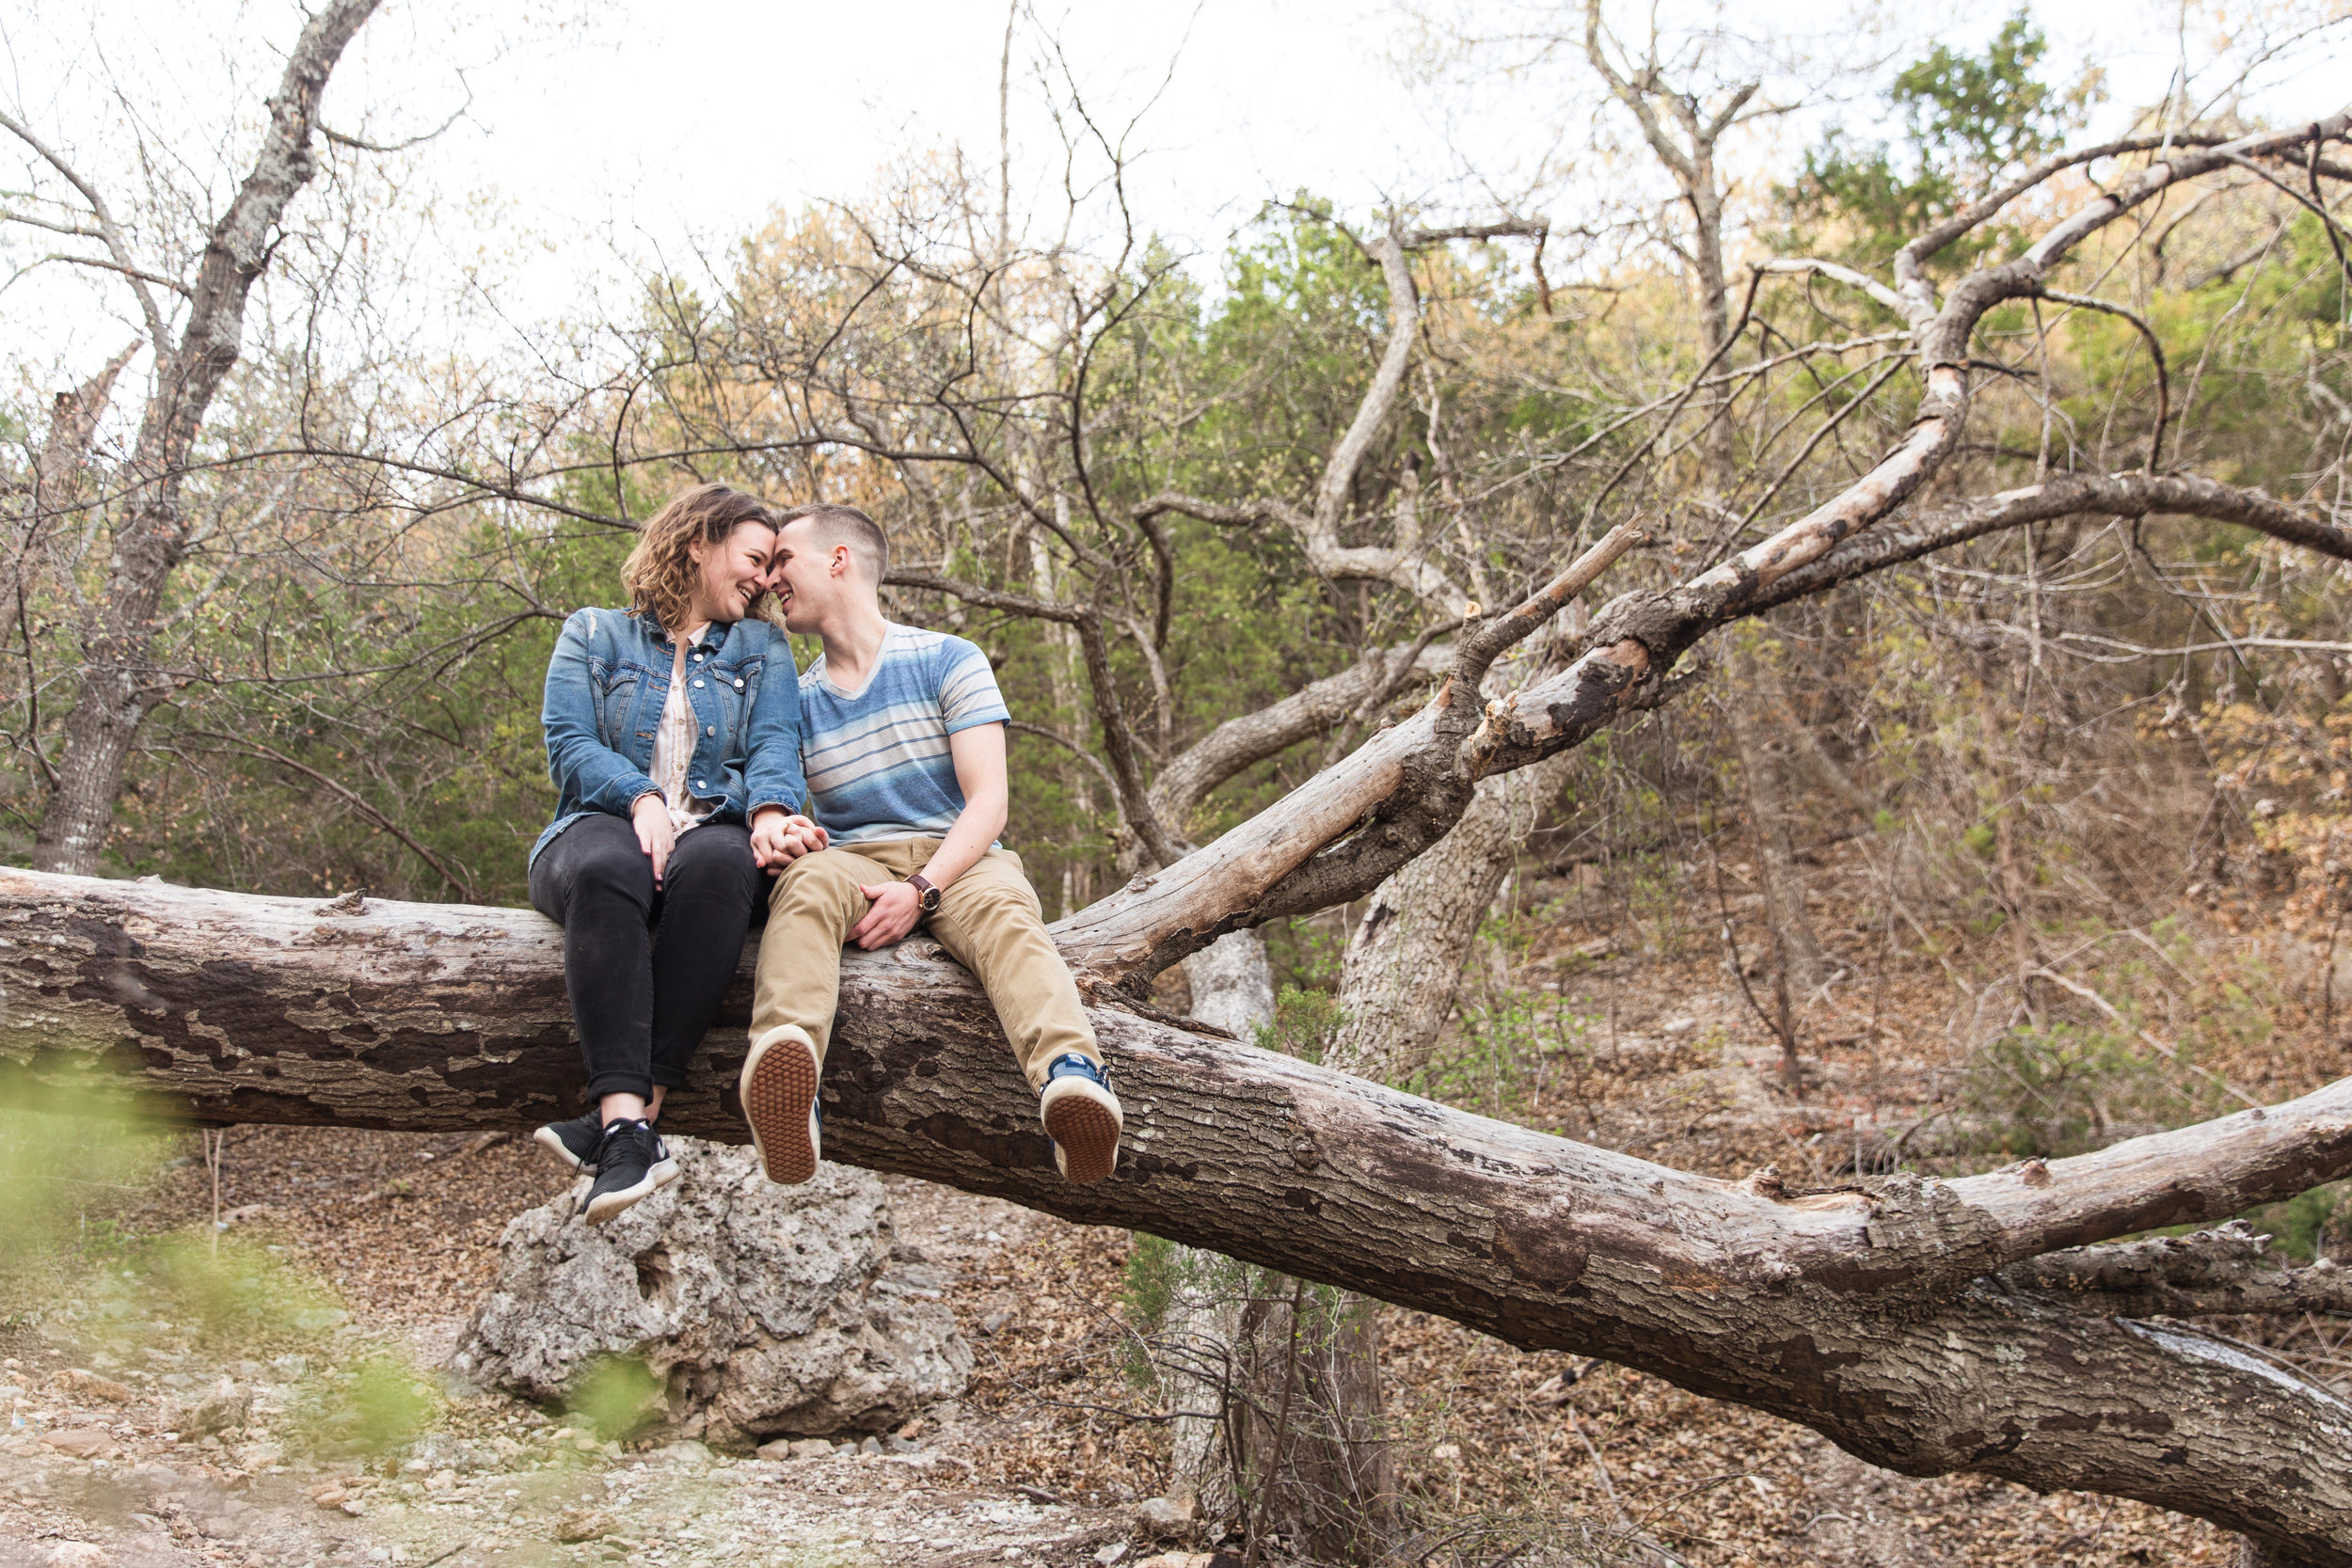 KomorebiPhotography-JessicaMcBroom-Carson+Colby-Engagements-March2019-169.jpg